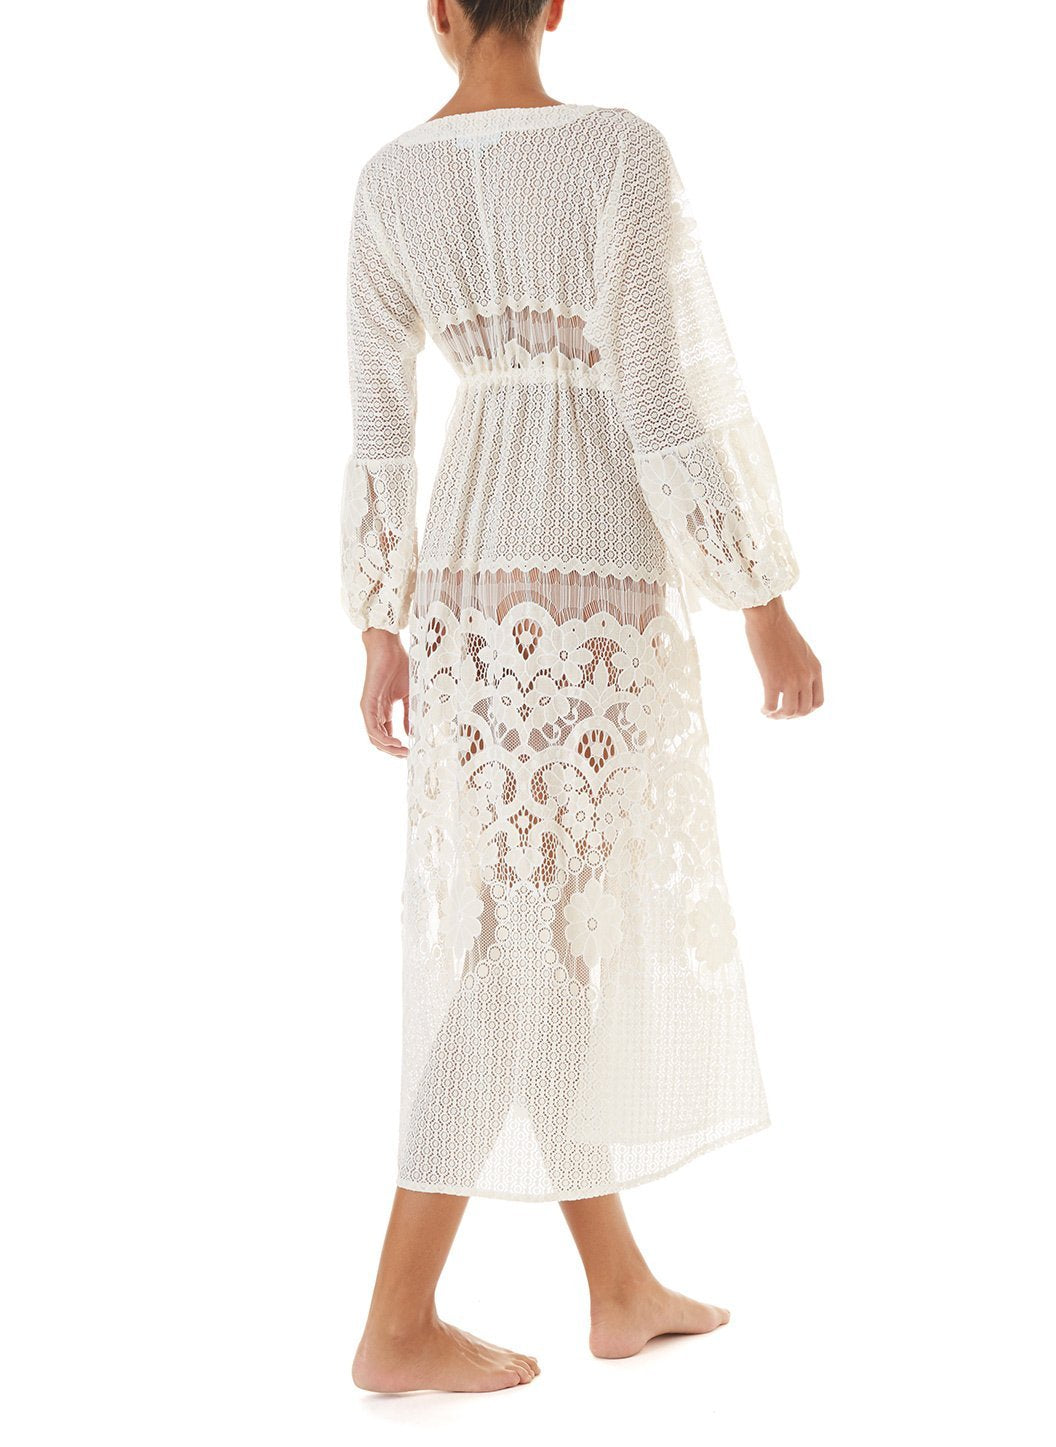 melissa cream lace tieside midi dress 2019 B_2